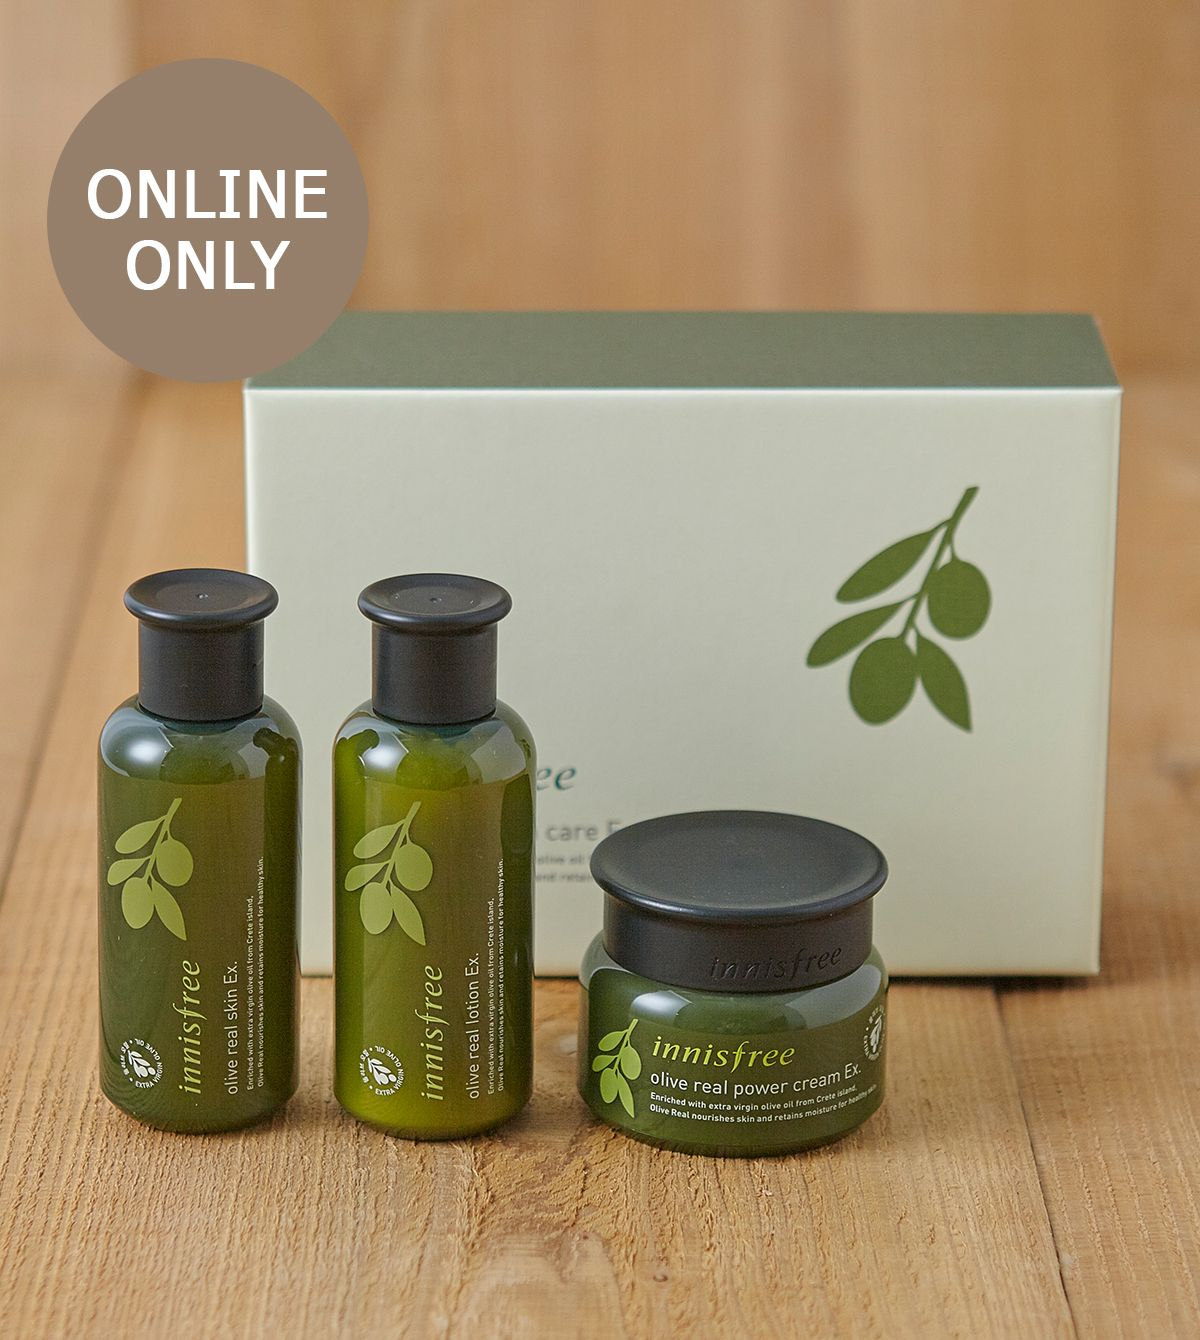 Olive Real Skincare Ex Special Skin Care Effective Skin Care Products Innisfree